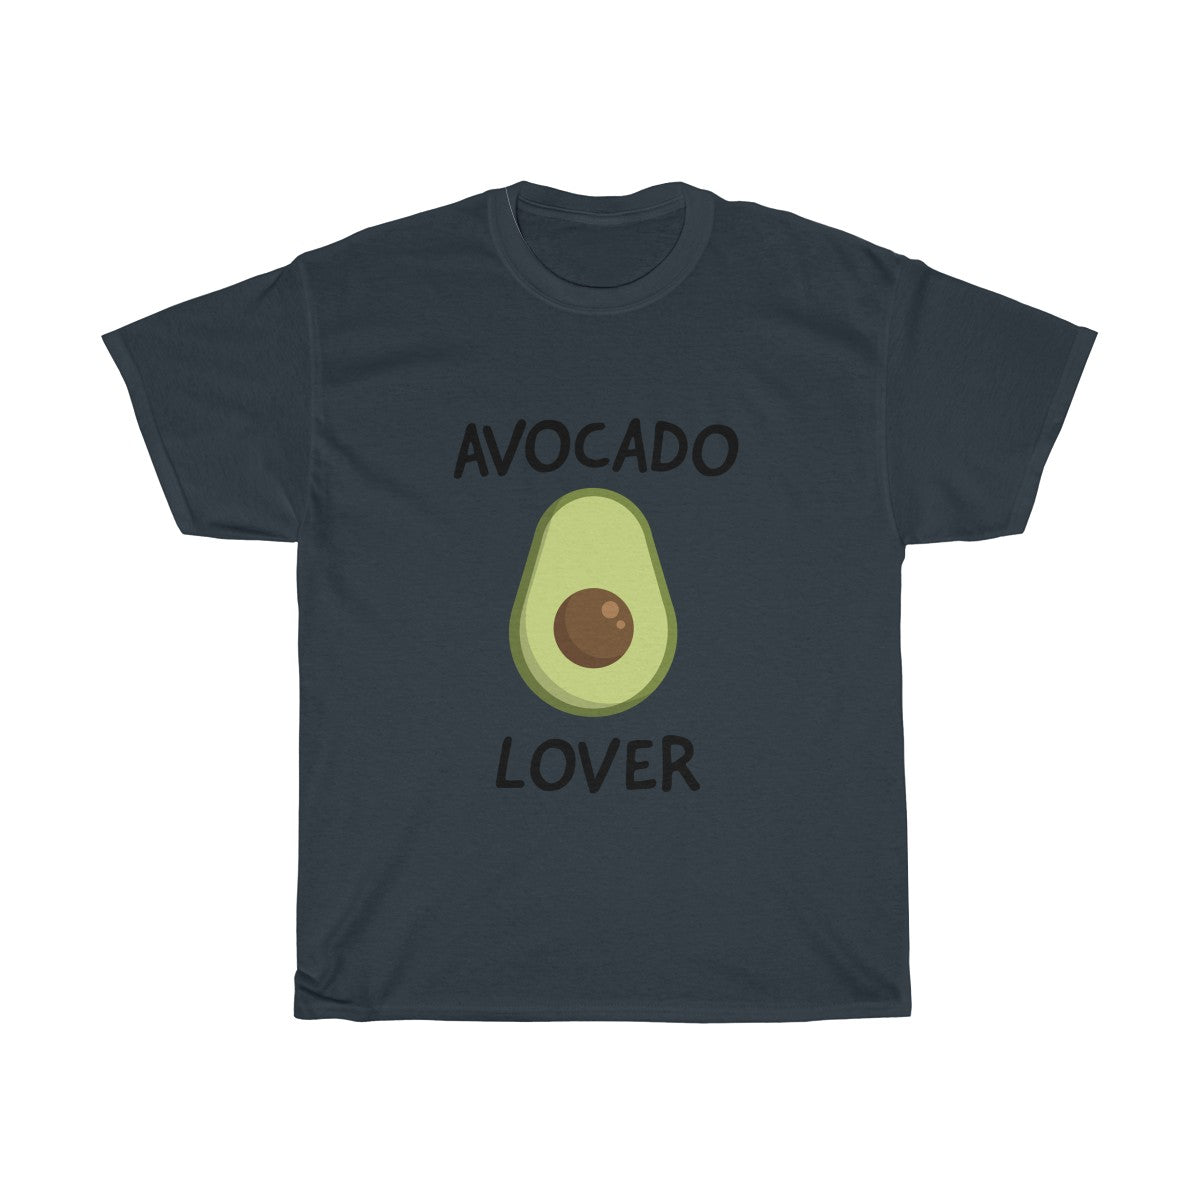 Avocado Lover - Unisex T-Shirt - My Vegan Menu